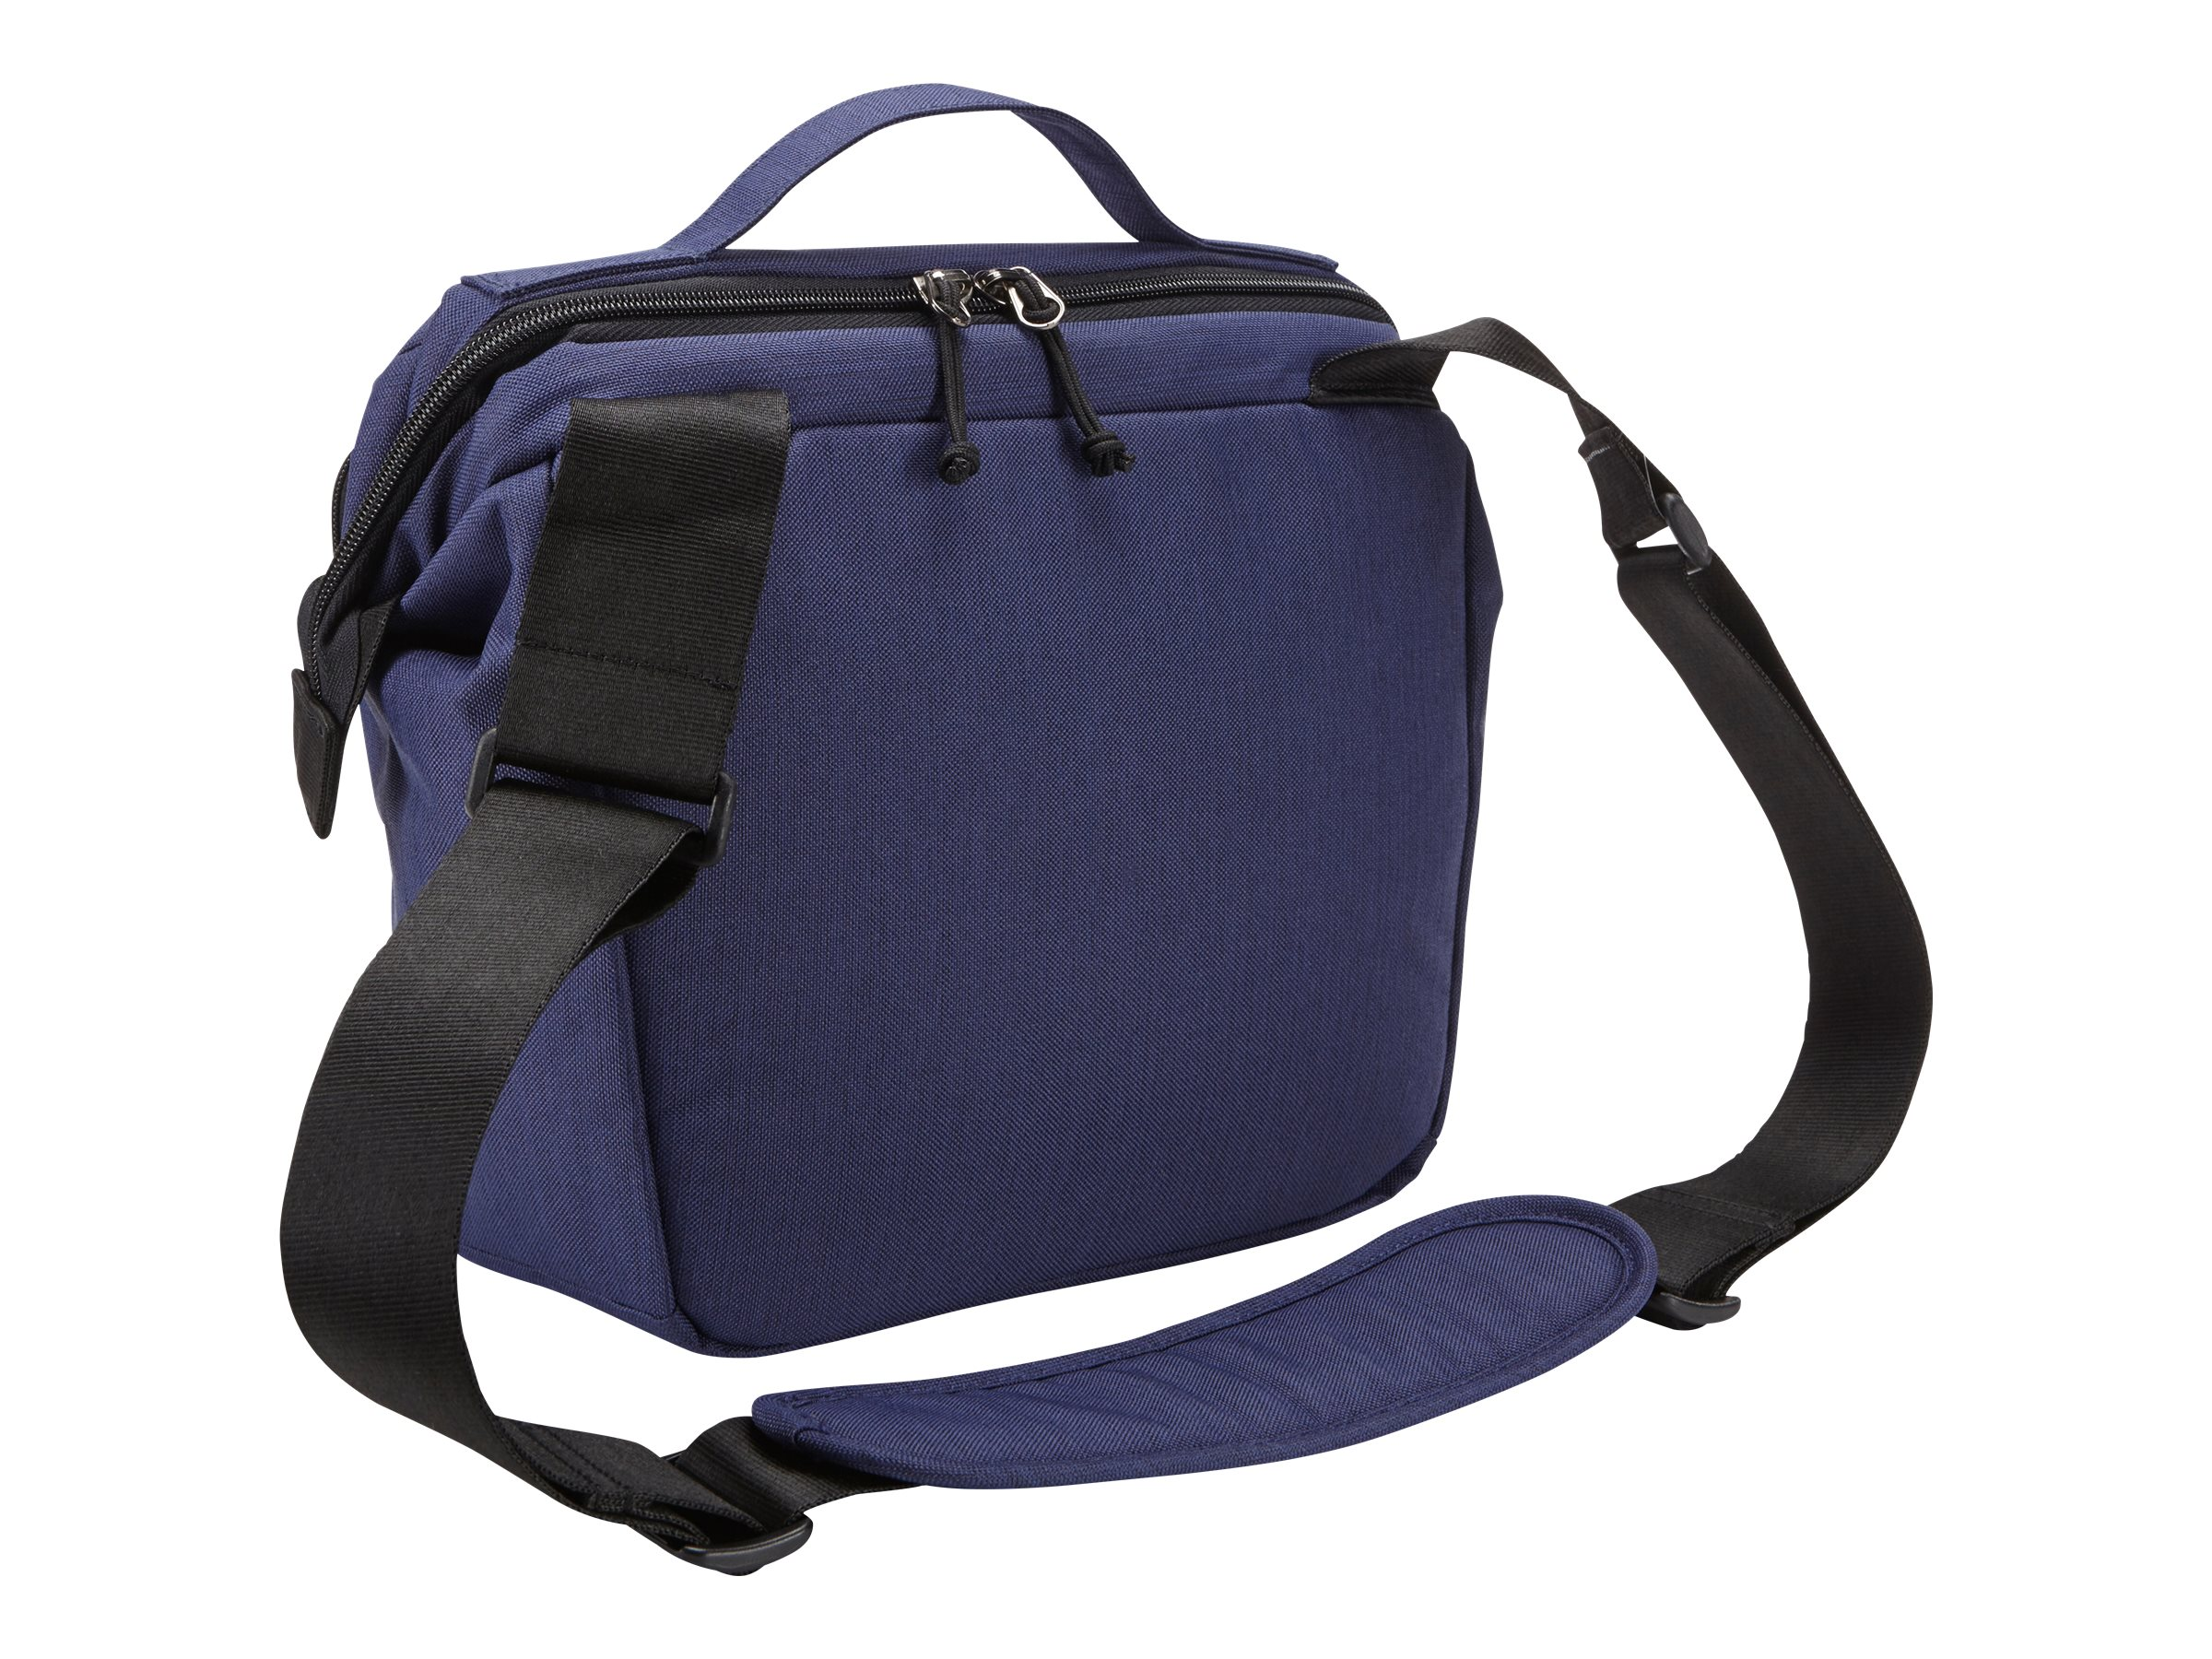 Case Logic Reflexion DSLR Small Shoulder Bag, Indigo, FLXM201INDIGO